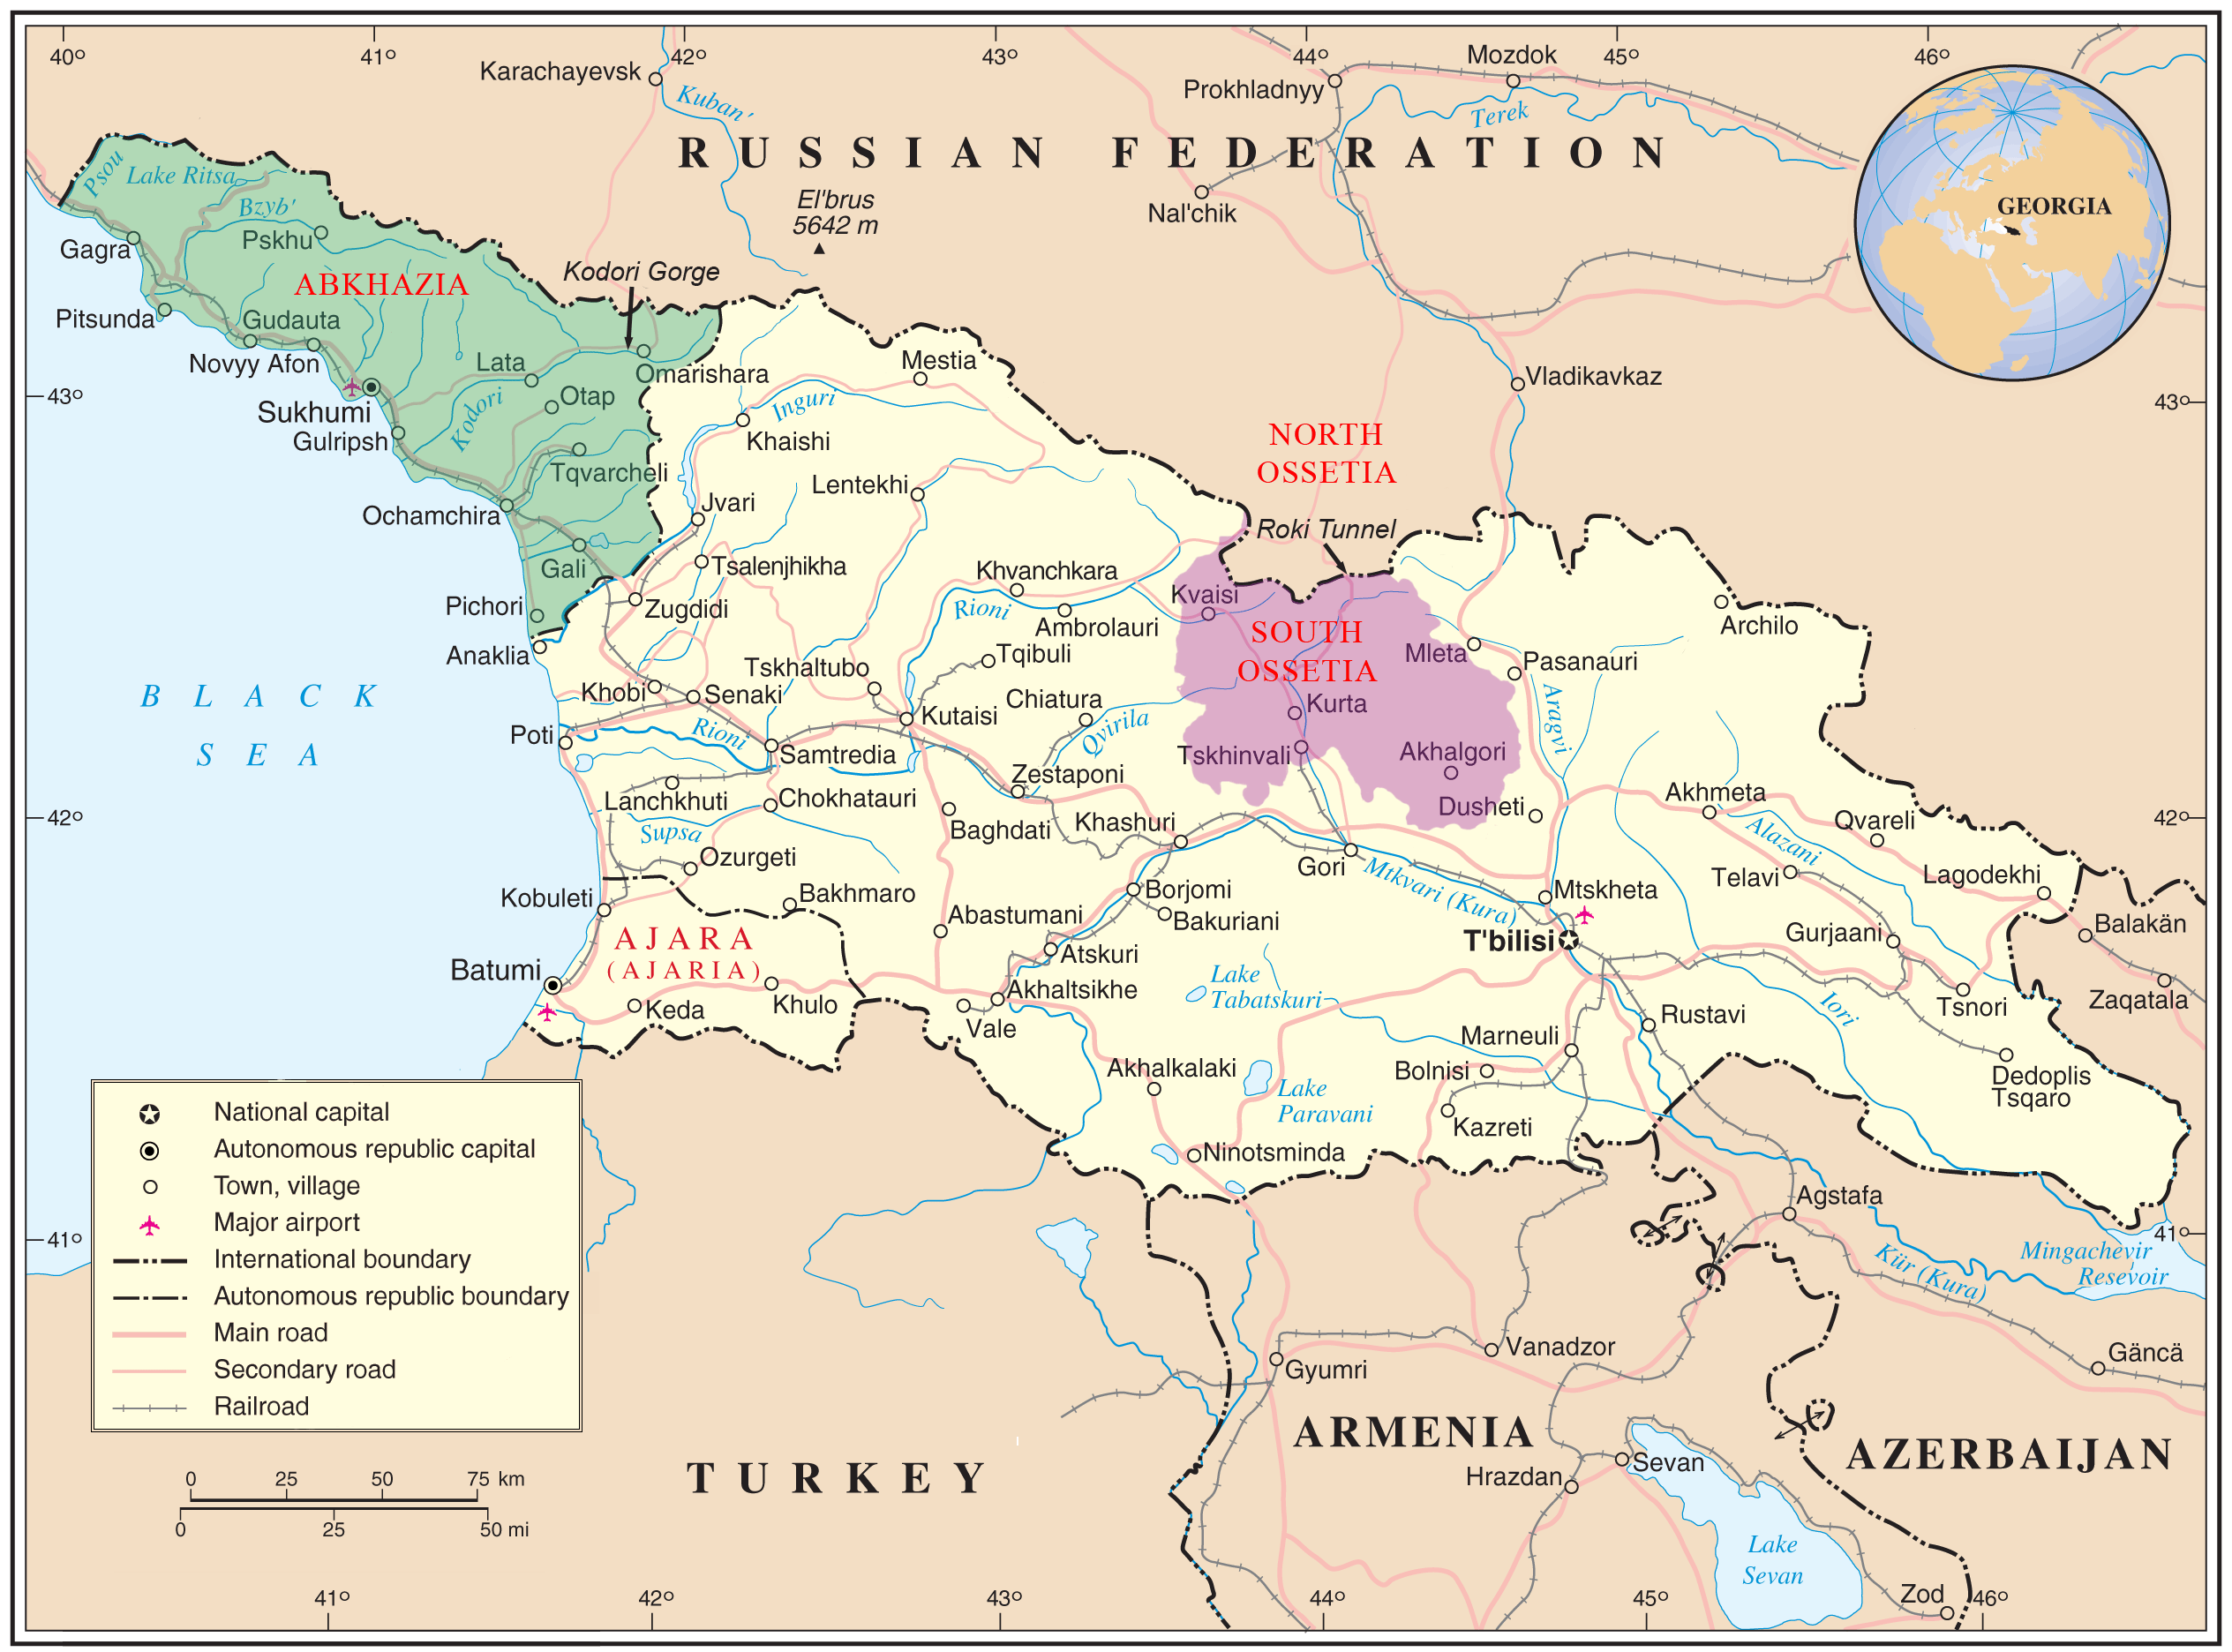 Show A Map Of Georgia.Georgian Ossetian Conflict Wikipedia